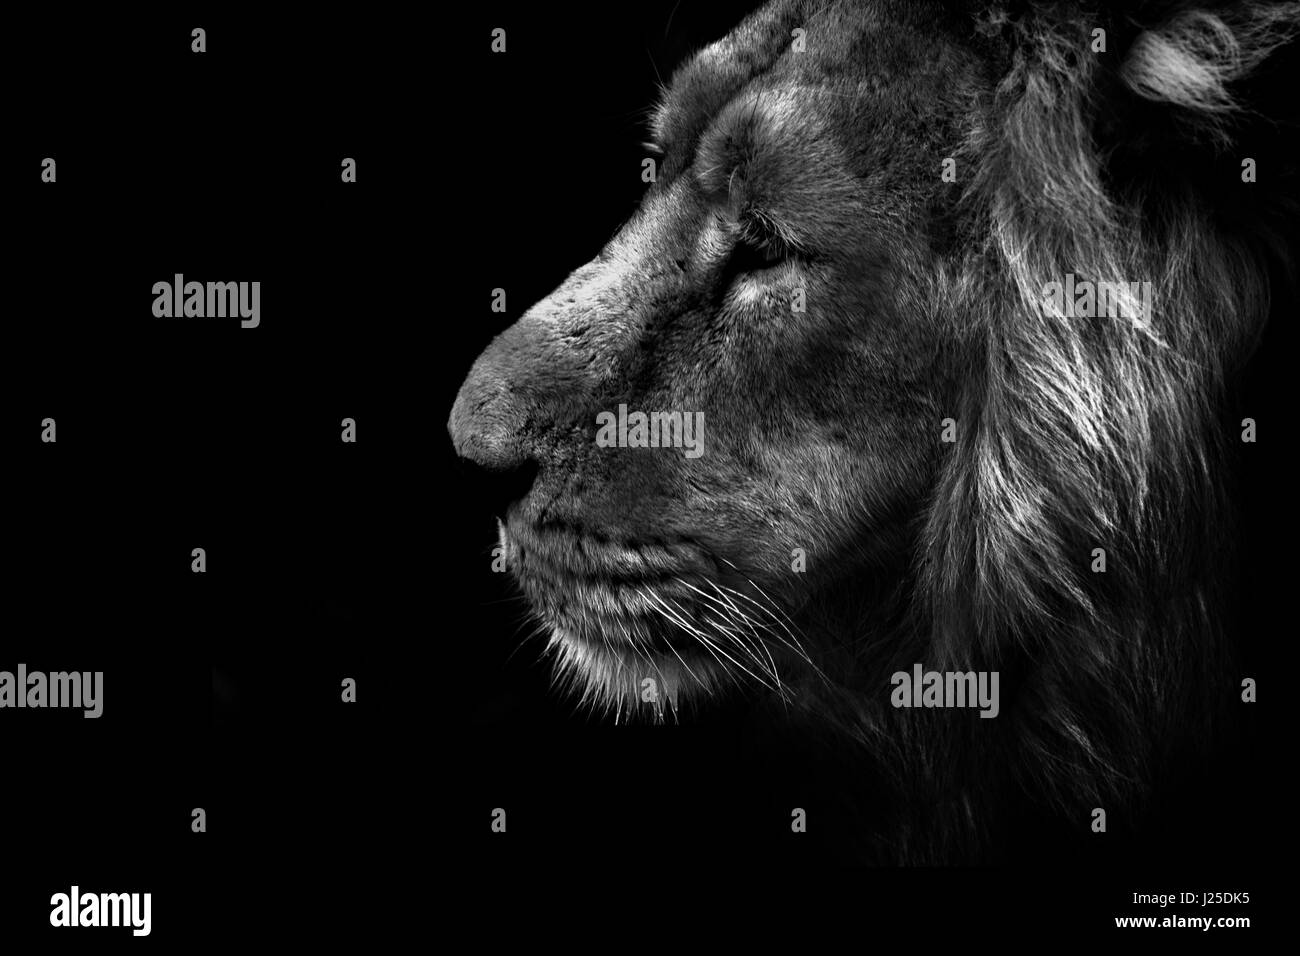 An alpha male lion on the prowl - Stock Image